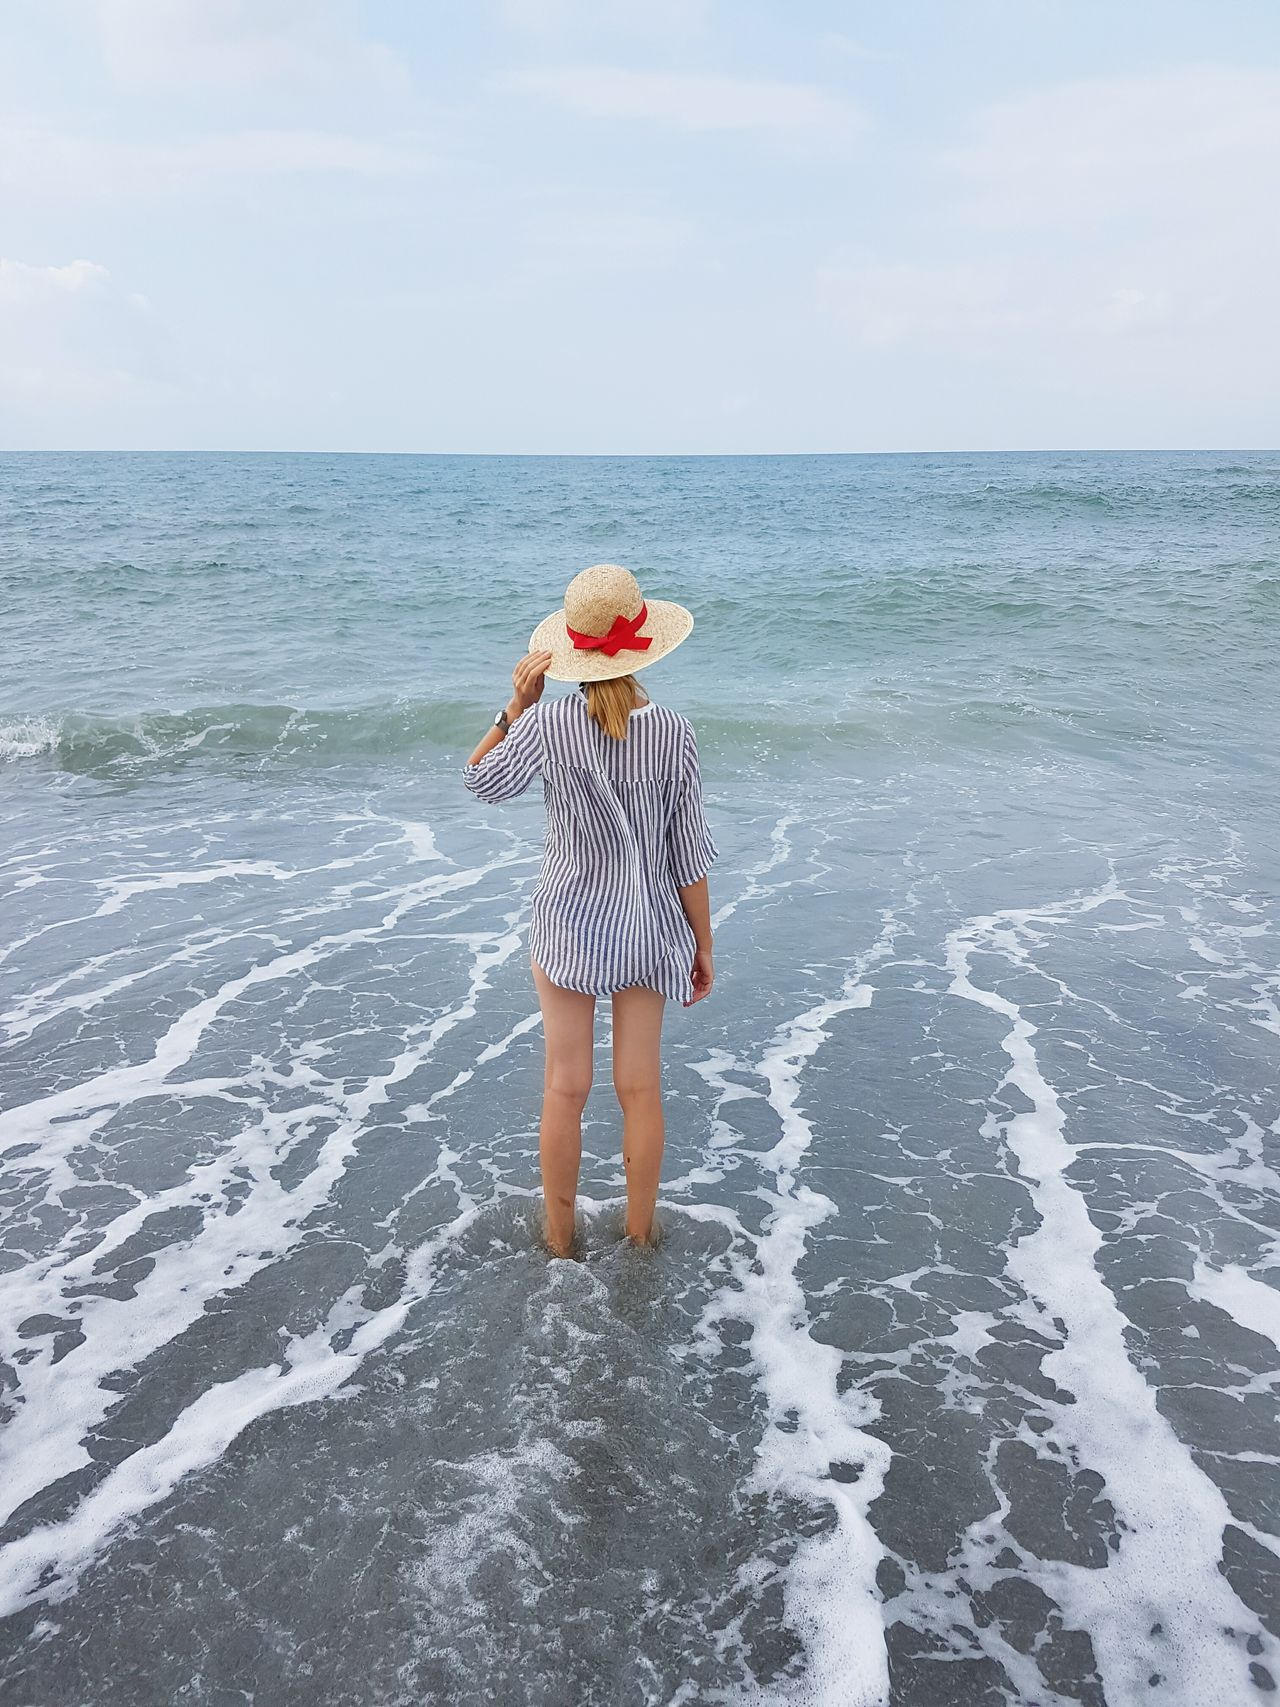 Full Length Sea Beauty In Nature Nature Woman Blue Wave Freedom Serenity Vacation Beachtime Beachfashion Water One Person Beach Outdoors Horizon Over Water Adult Day Sky EyeEmNewHere